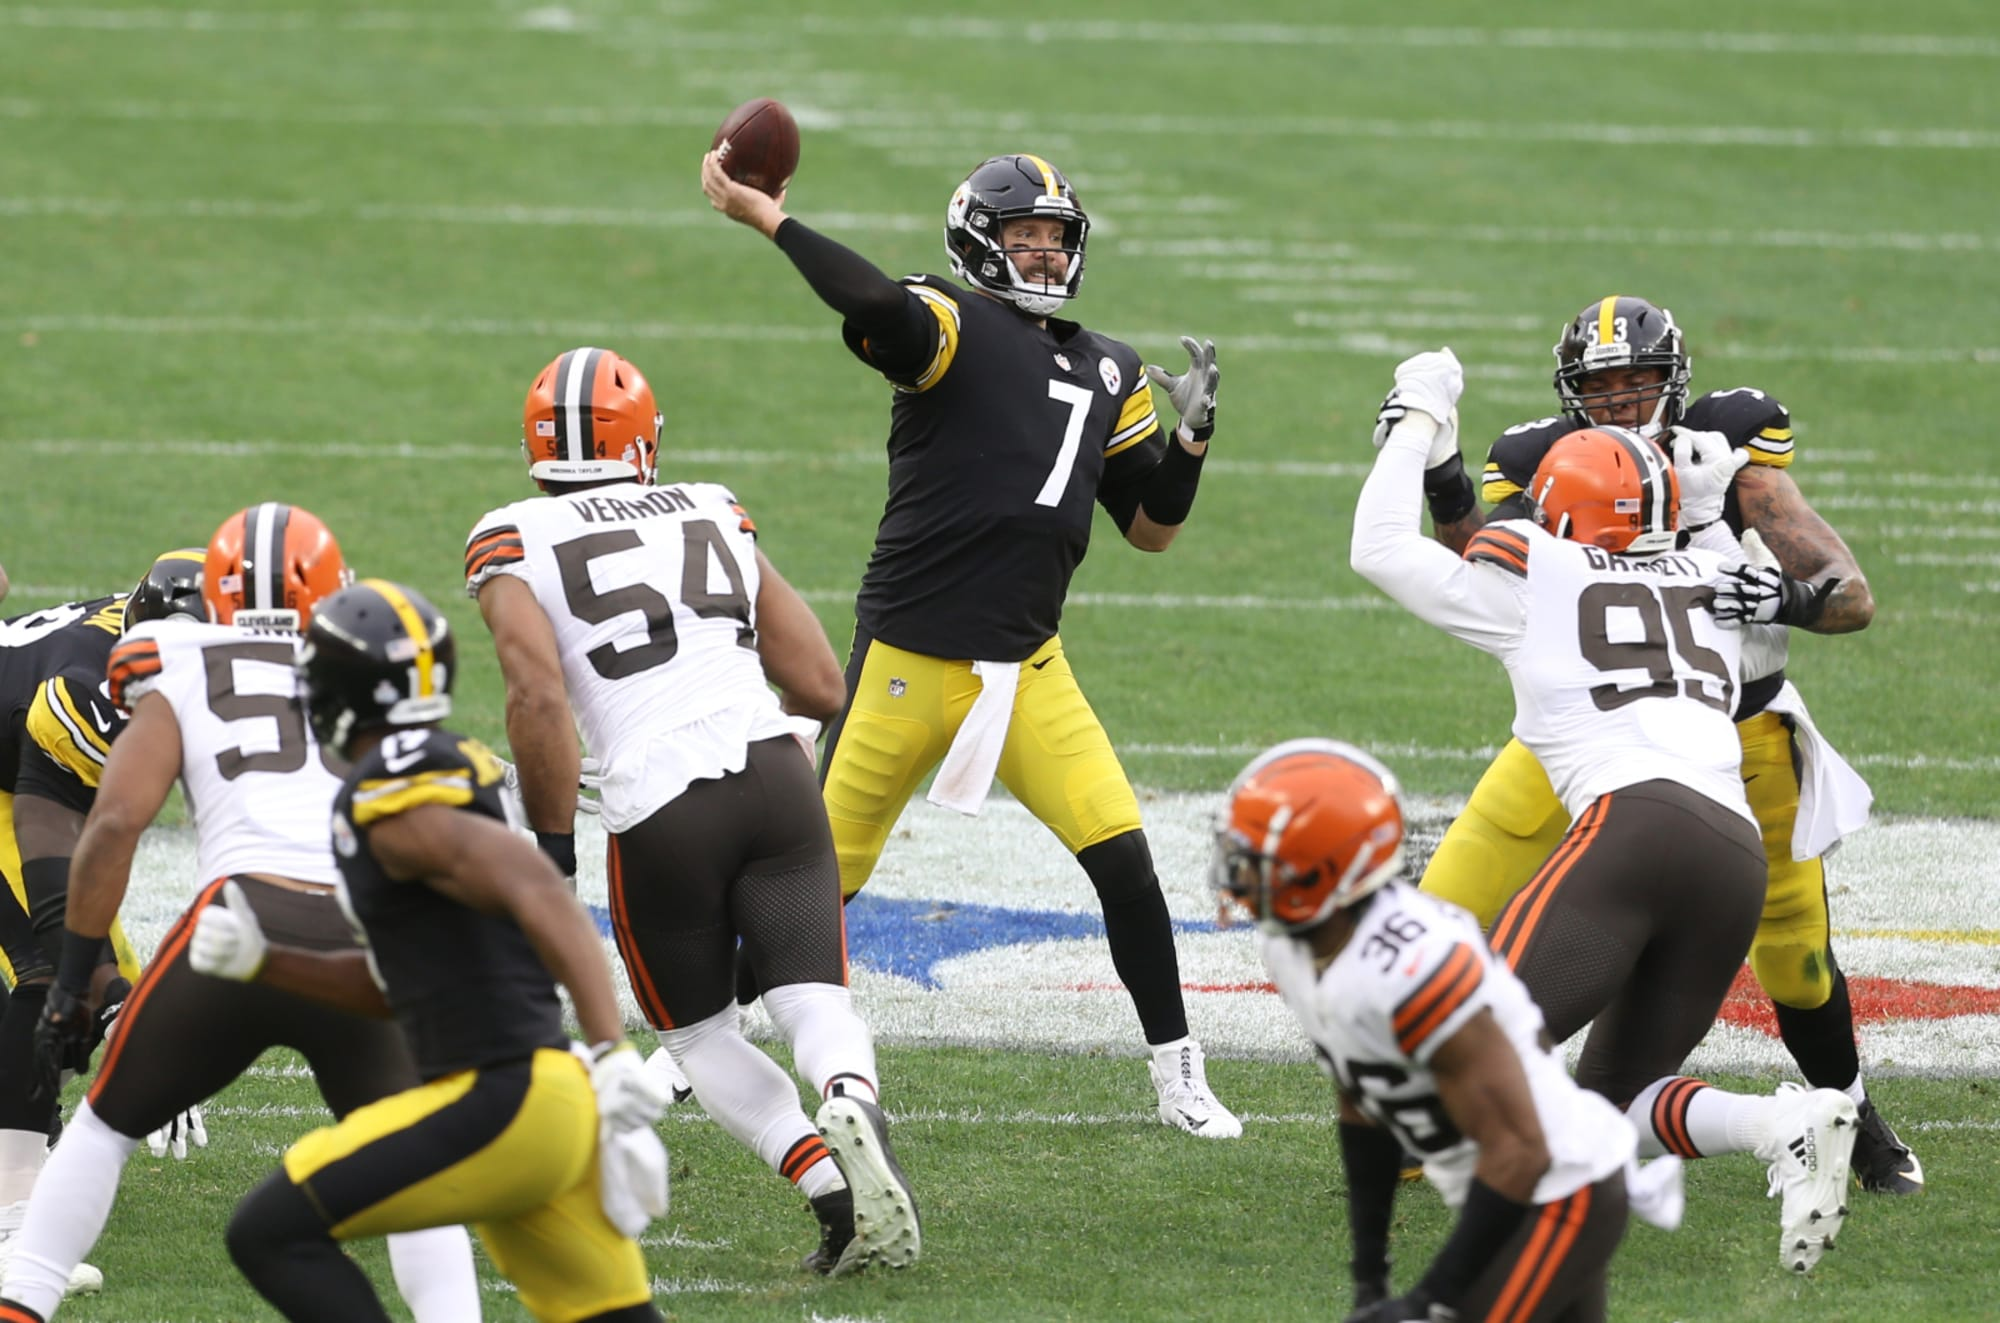 Impressive numbers from Steelers blowout win over Browns